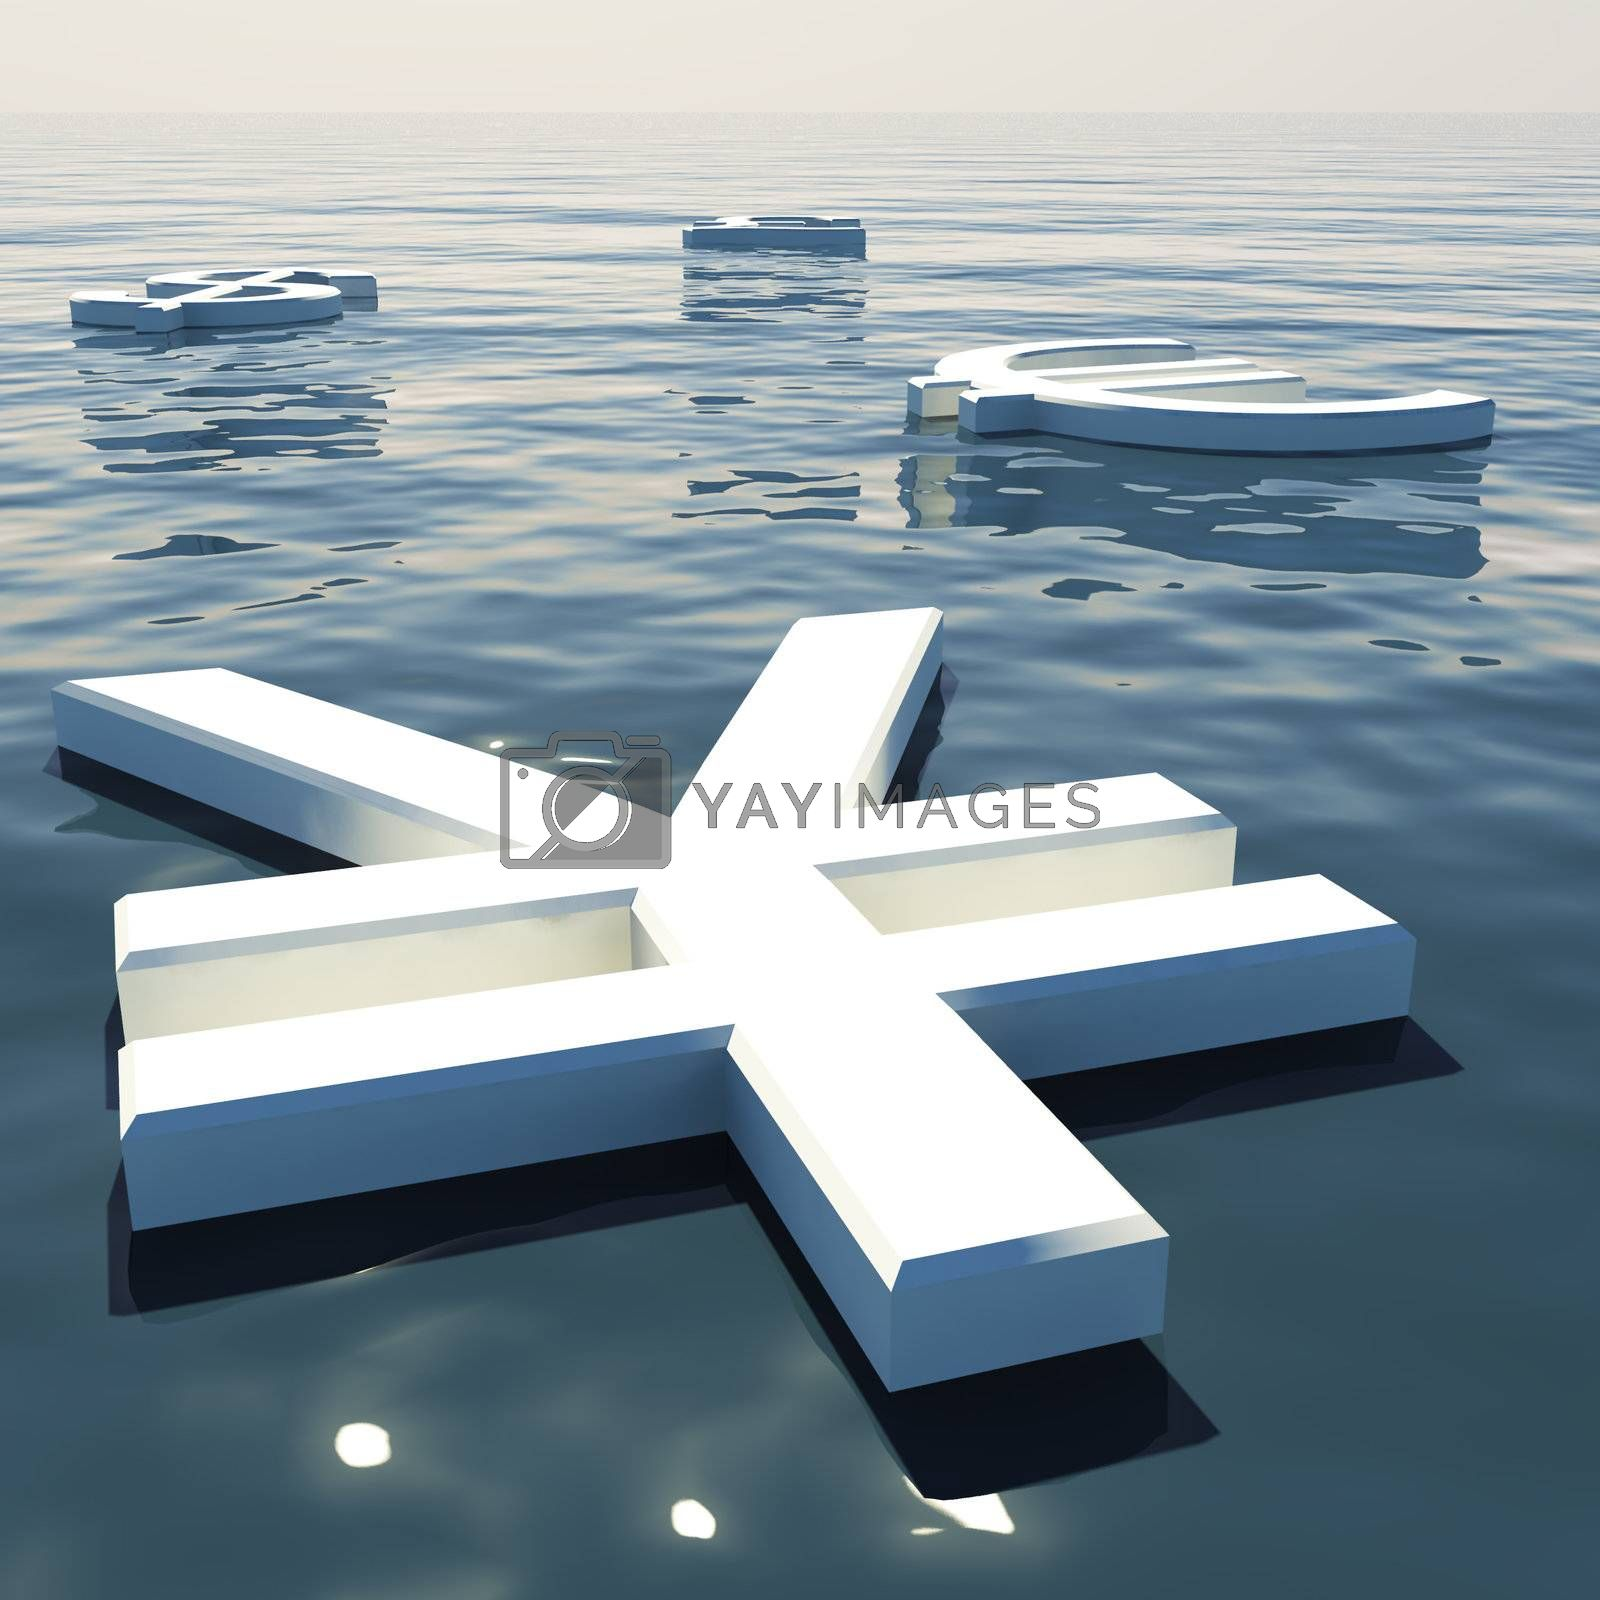 Yen Floating And Currencies Going Away Showing Money Exchange And Forex